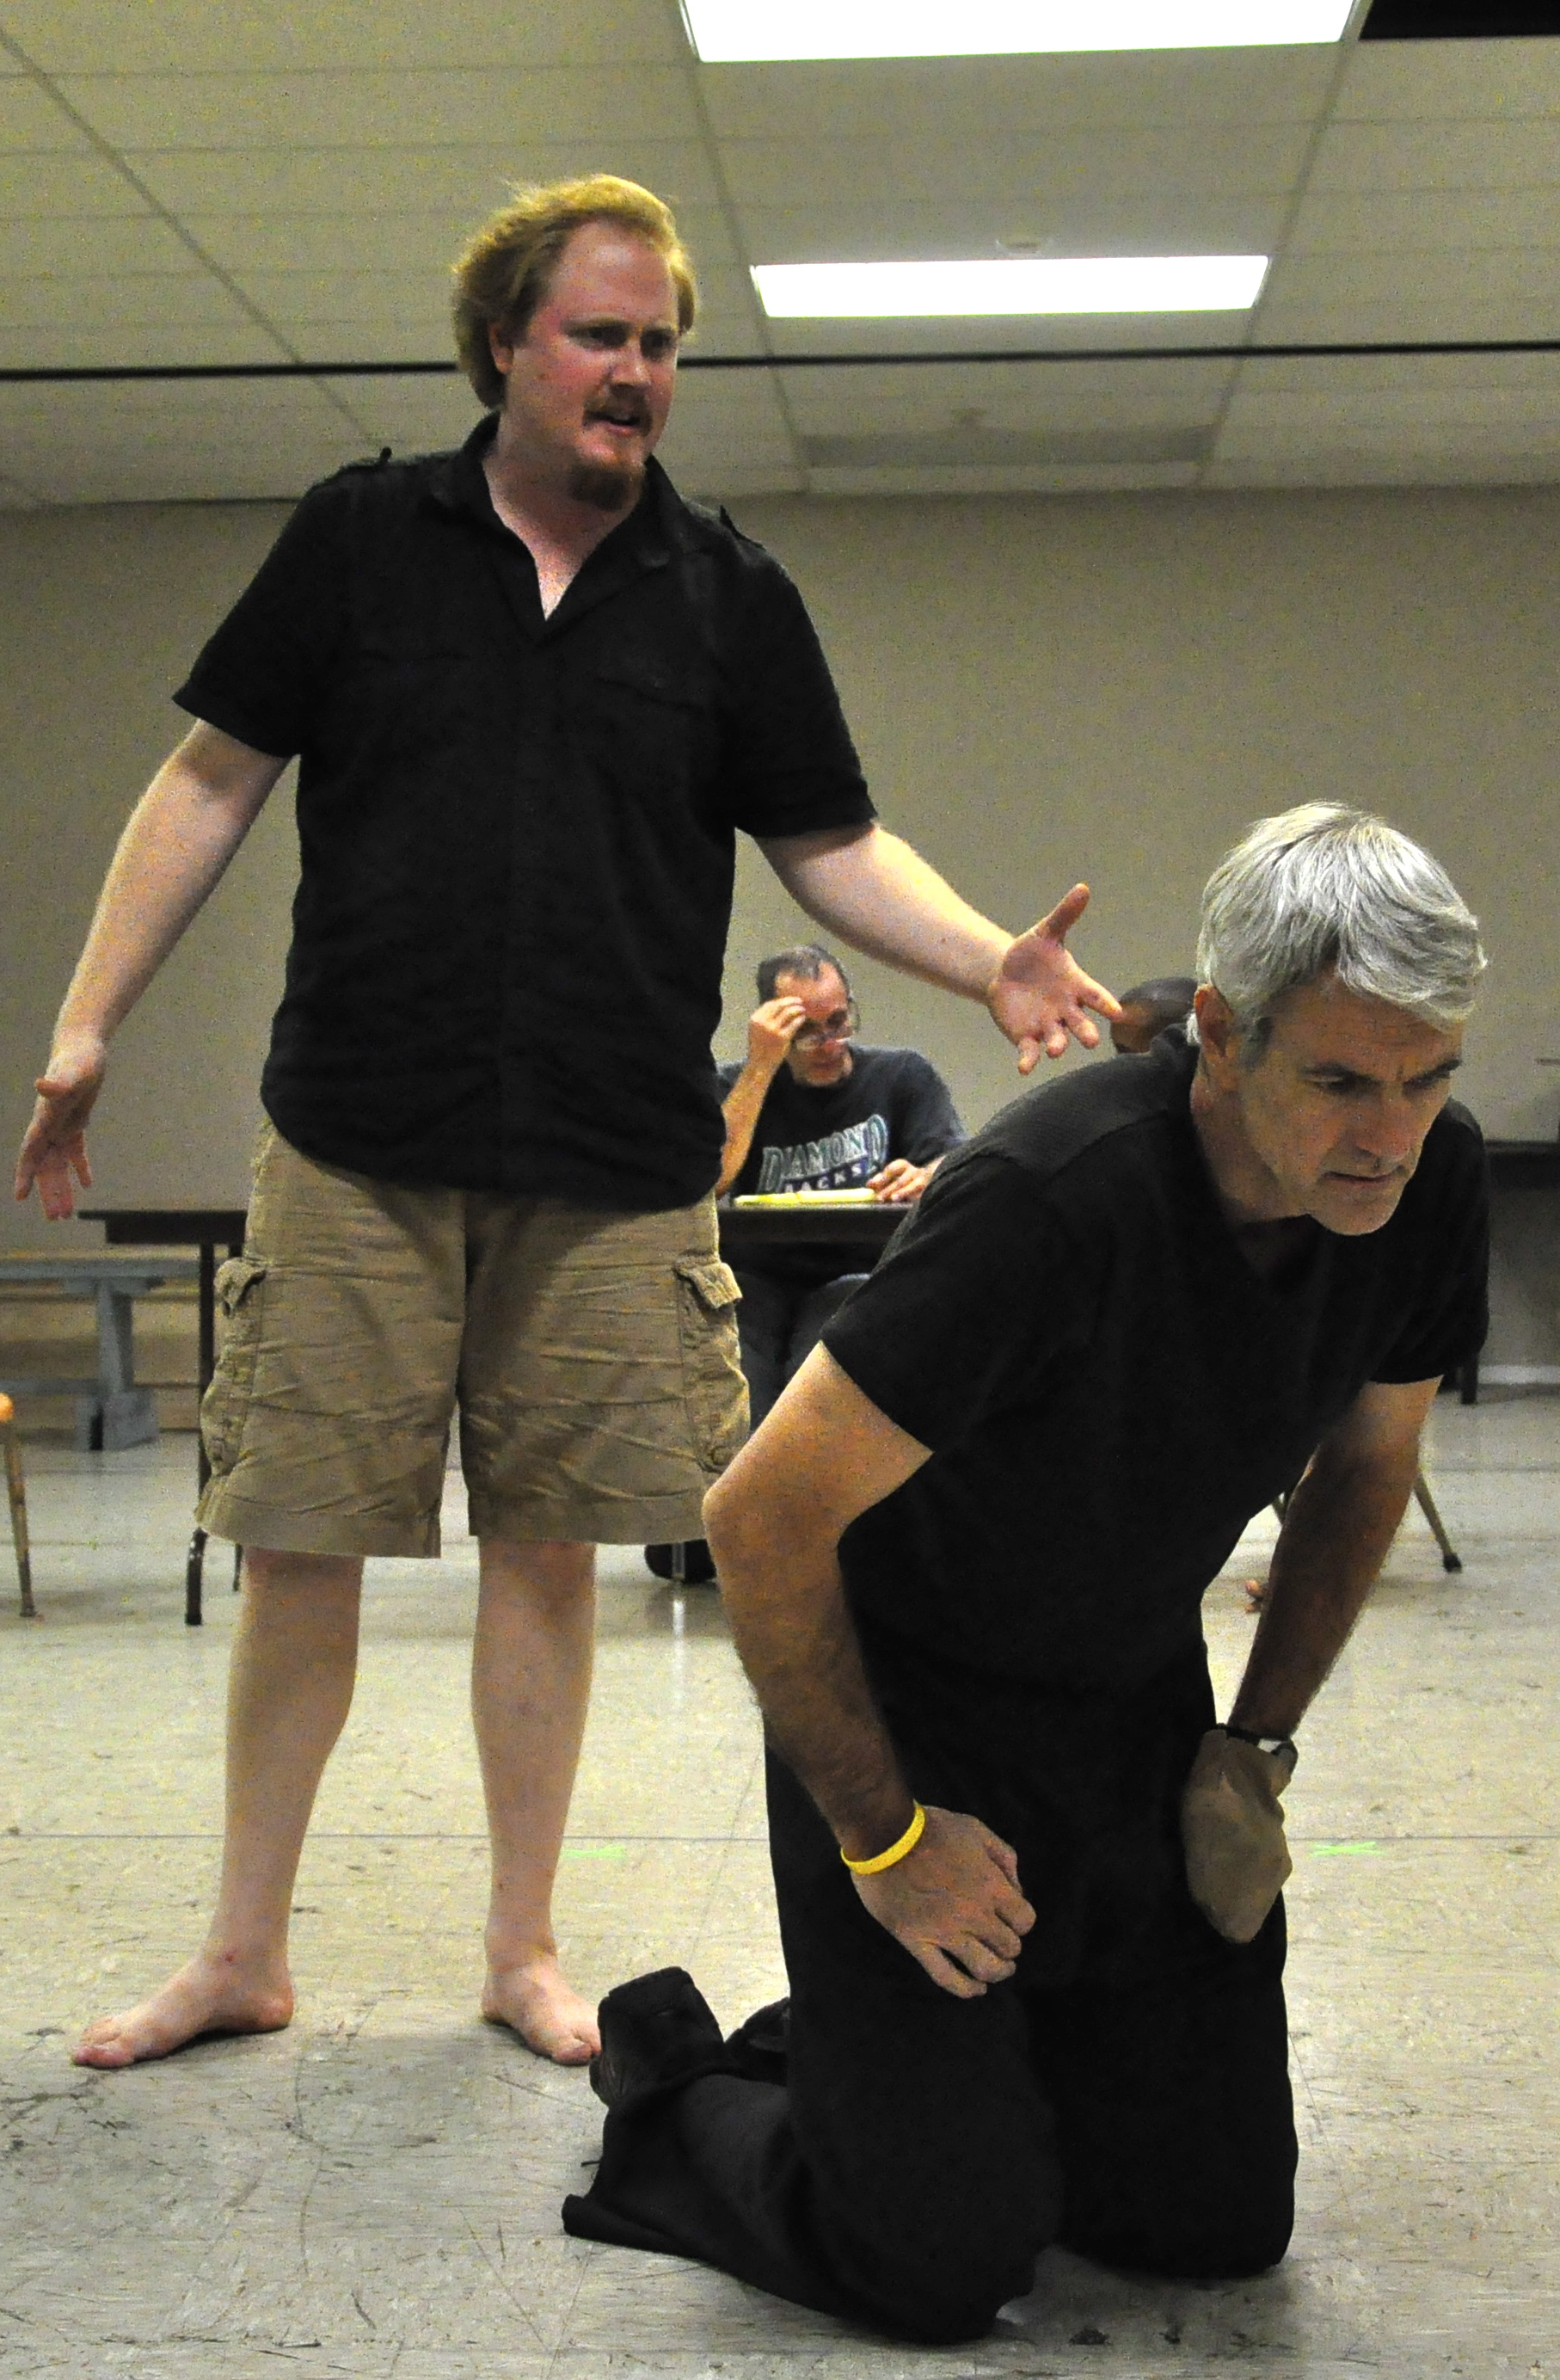 Randy Messersmith recreates his role of Titus Andronicus in the 2011 production at Southwest Shakespeare Company, a troupe he co-founded with friend Kevin Dressler. (Also pictured, Jesse James Kamps.)